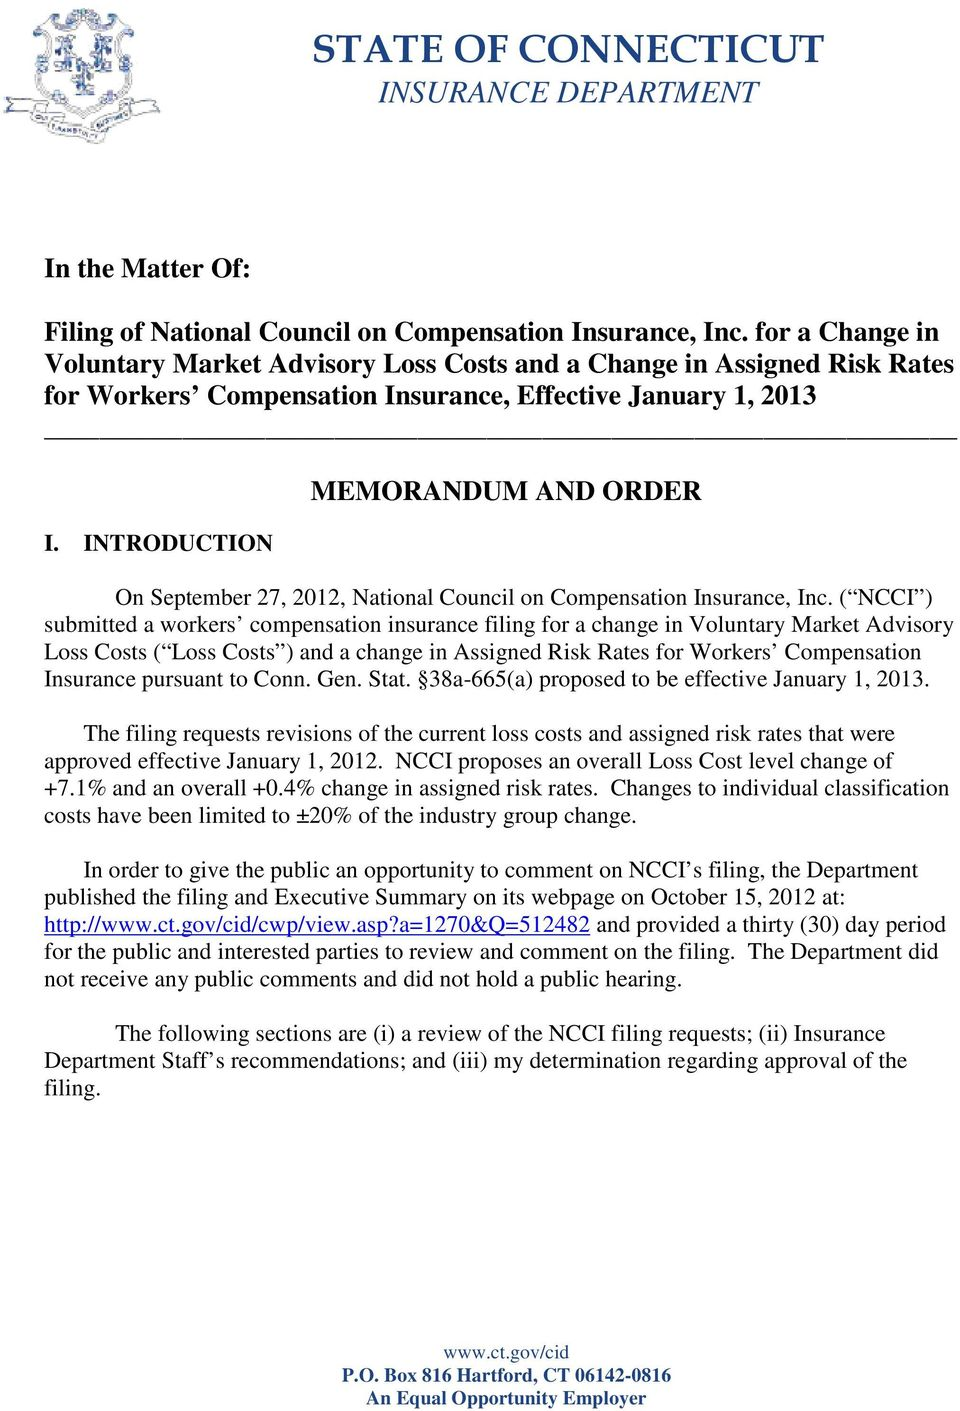 INTRODUCTION MEMORANDUM AND ORDER On September 27, 2012, National Council on Compensation Insurance, Inc.